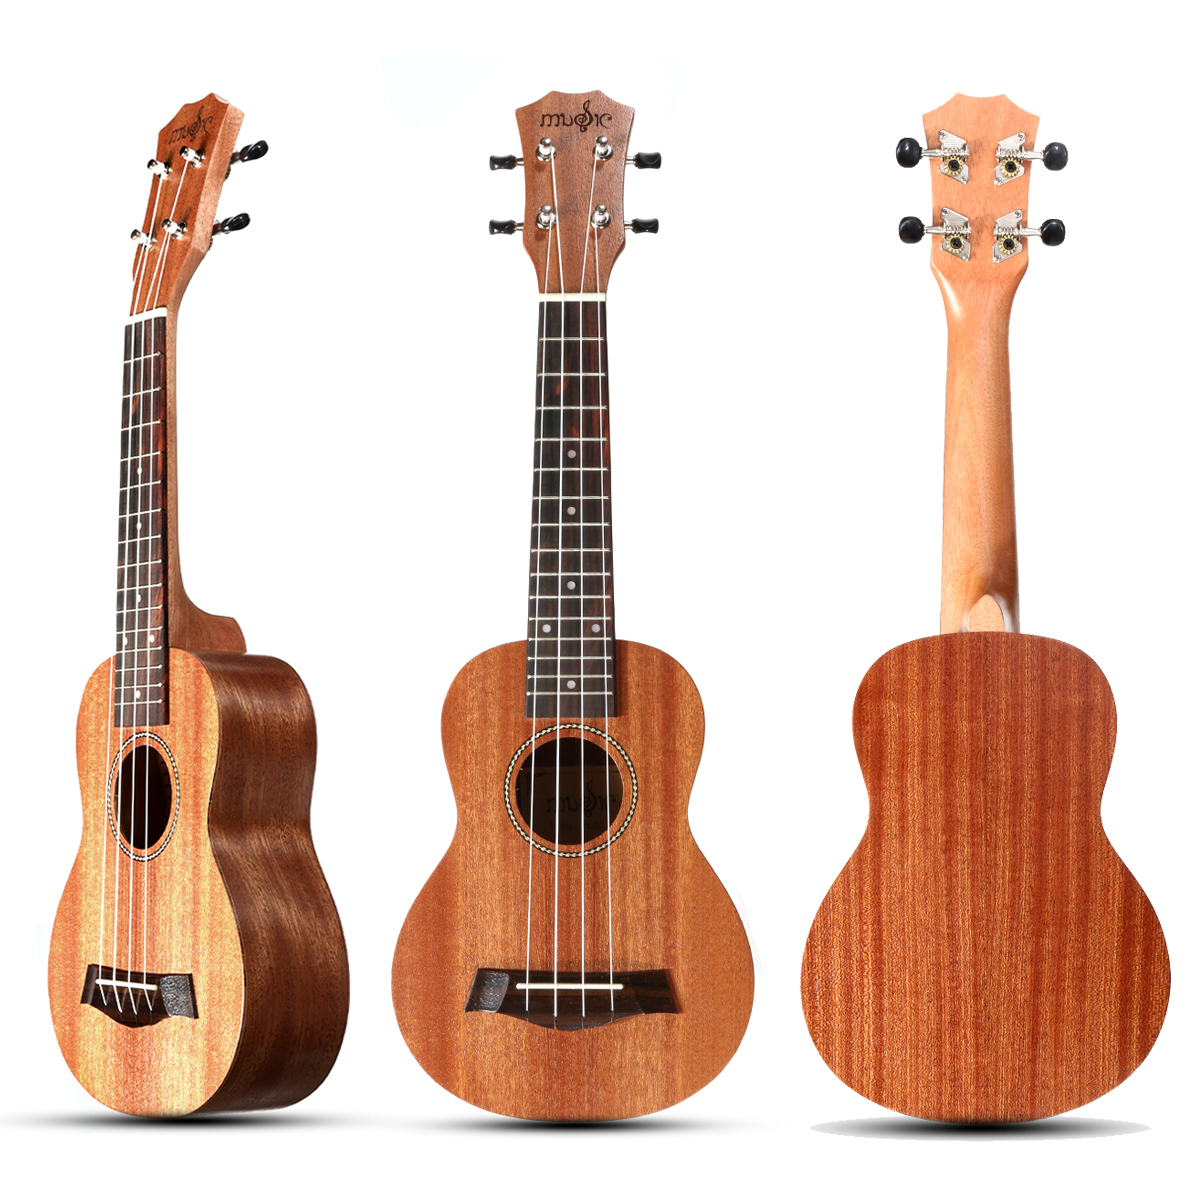 21 Inch 4 Strings 15 Frets Wood Color Mahogany Ukulele Musical Instrument With Guitar picks/Rope